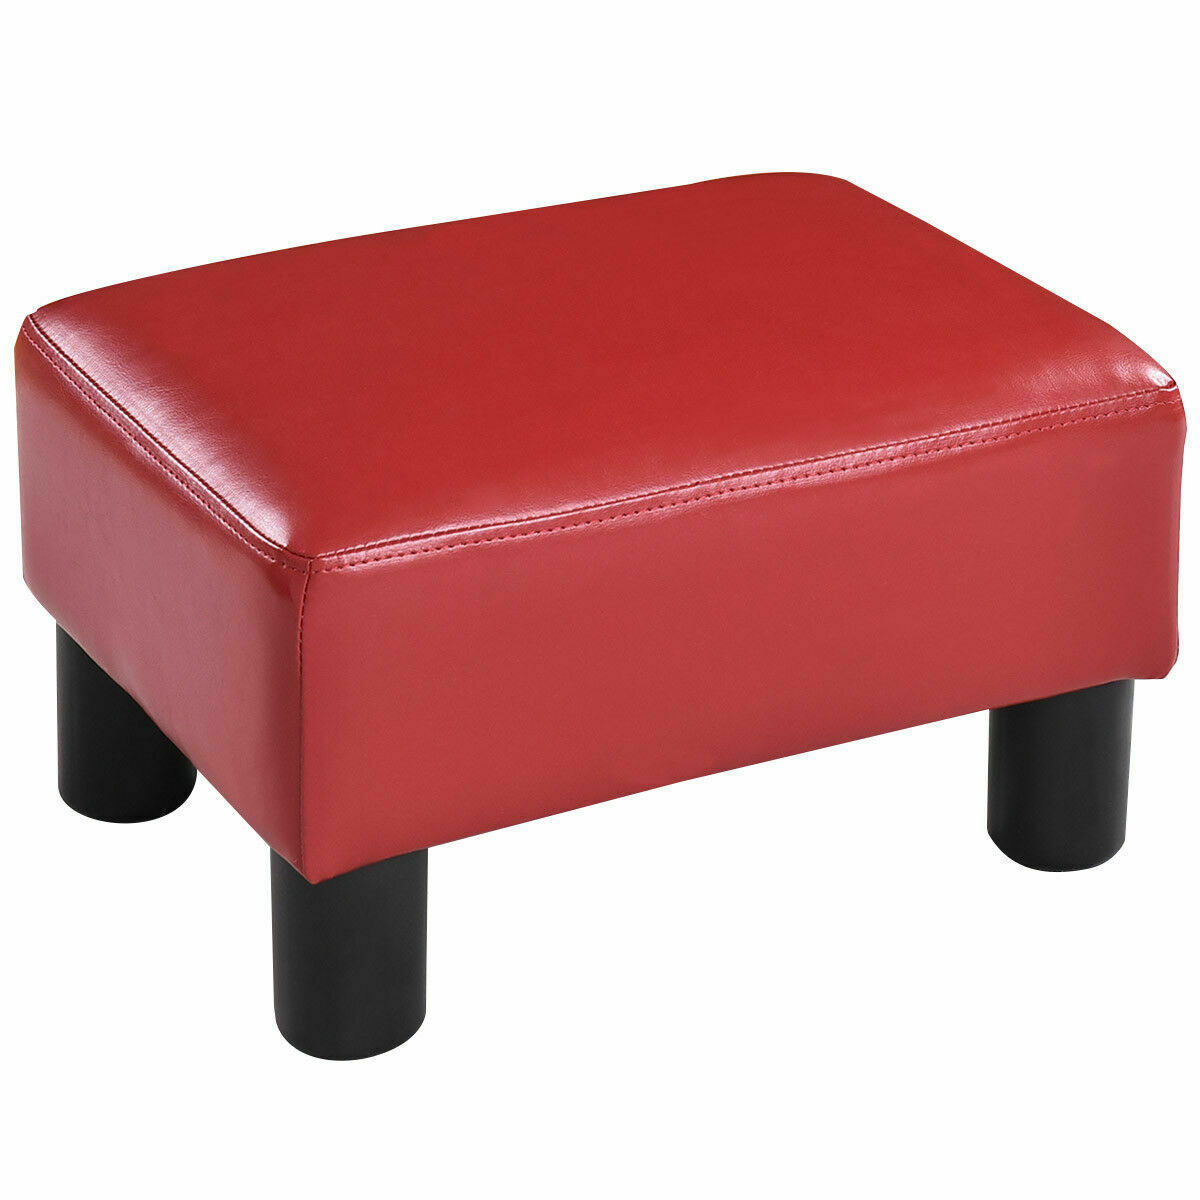 Picture of Footrest stool